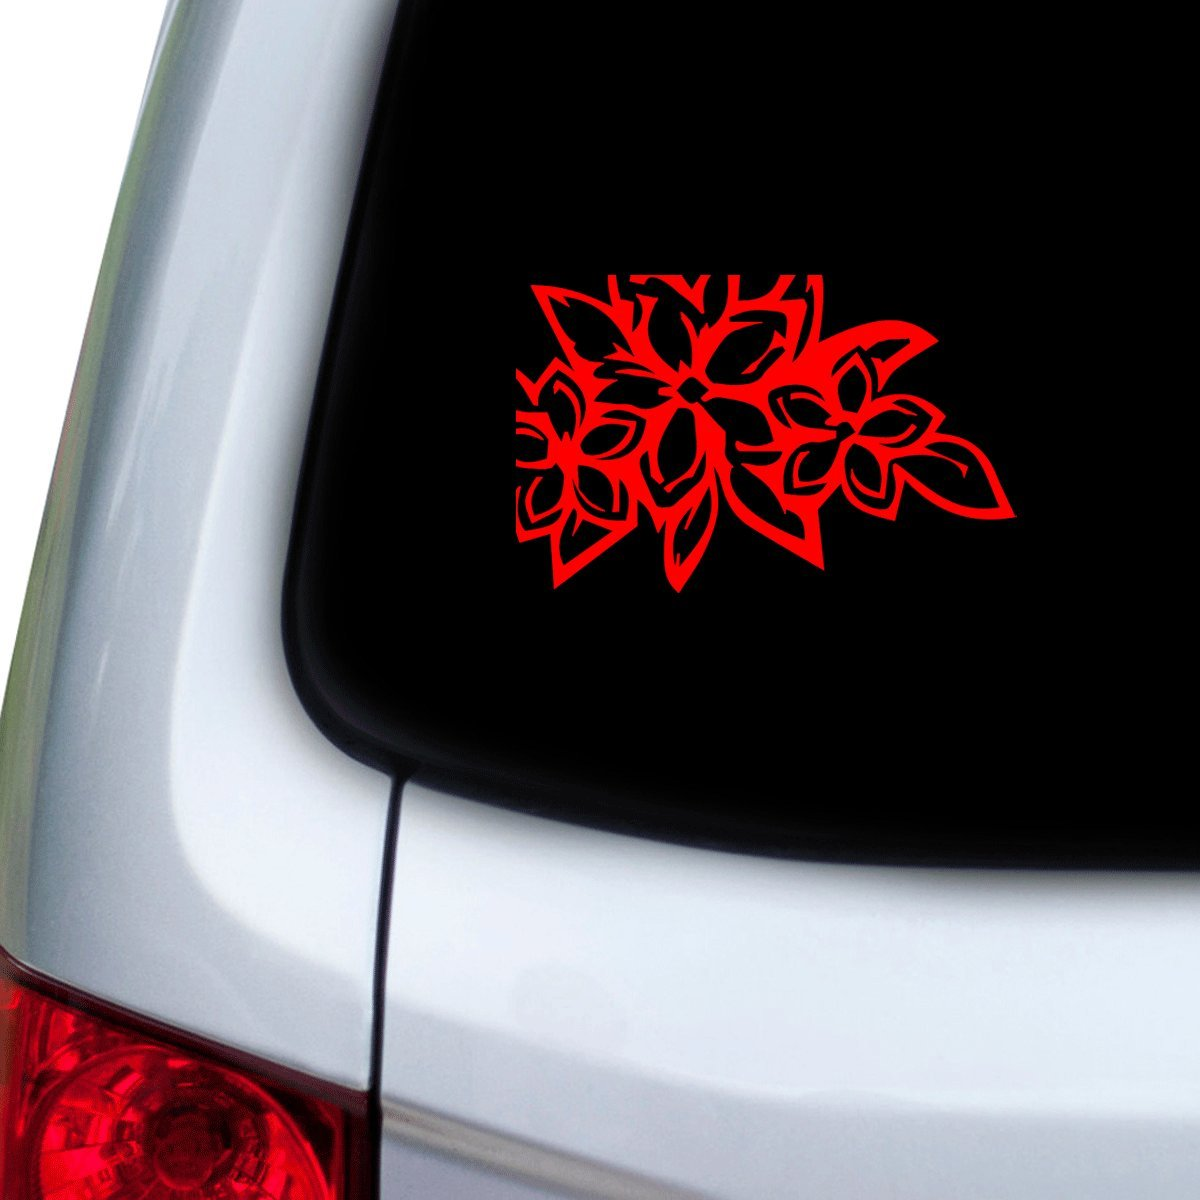 Doors Hoods StickAny Car and Auto Decal Series Flower Corner Bunch Sticker for Windows Red